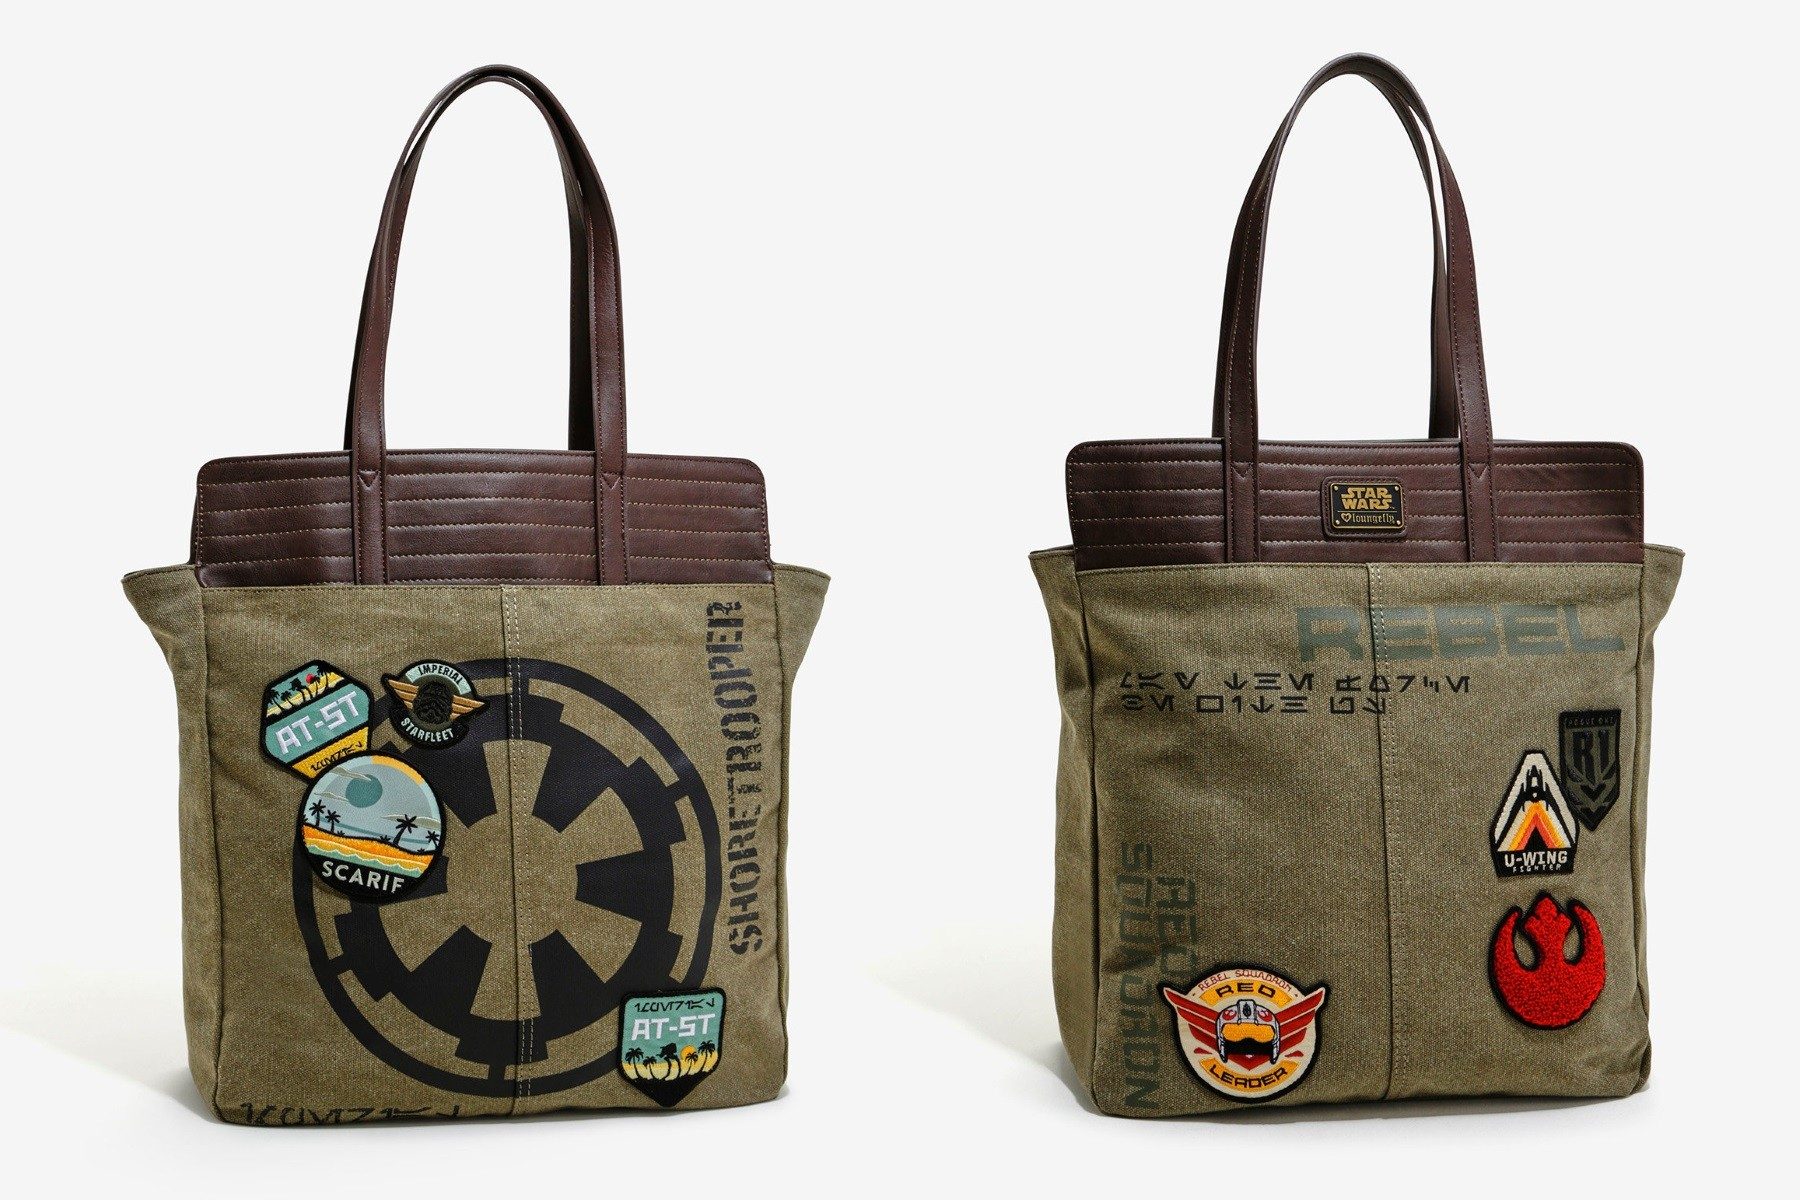 Loungefly X Rogue One patch tote bag and wallet available at Box Lunch